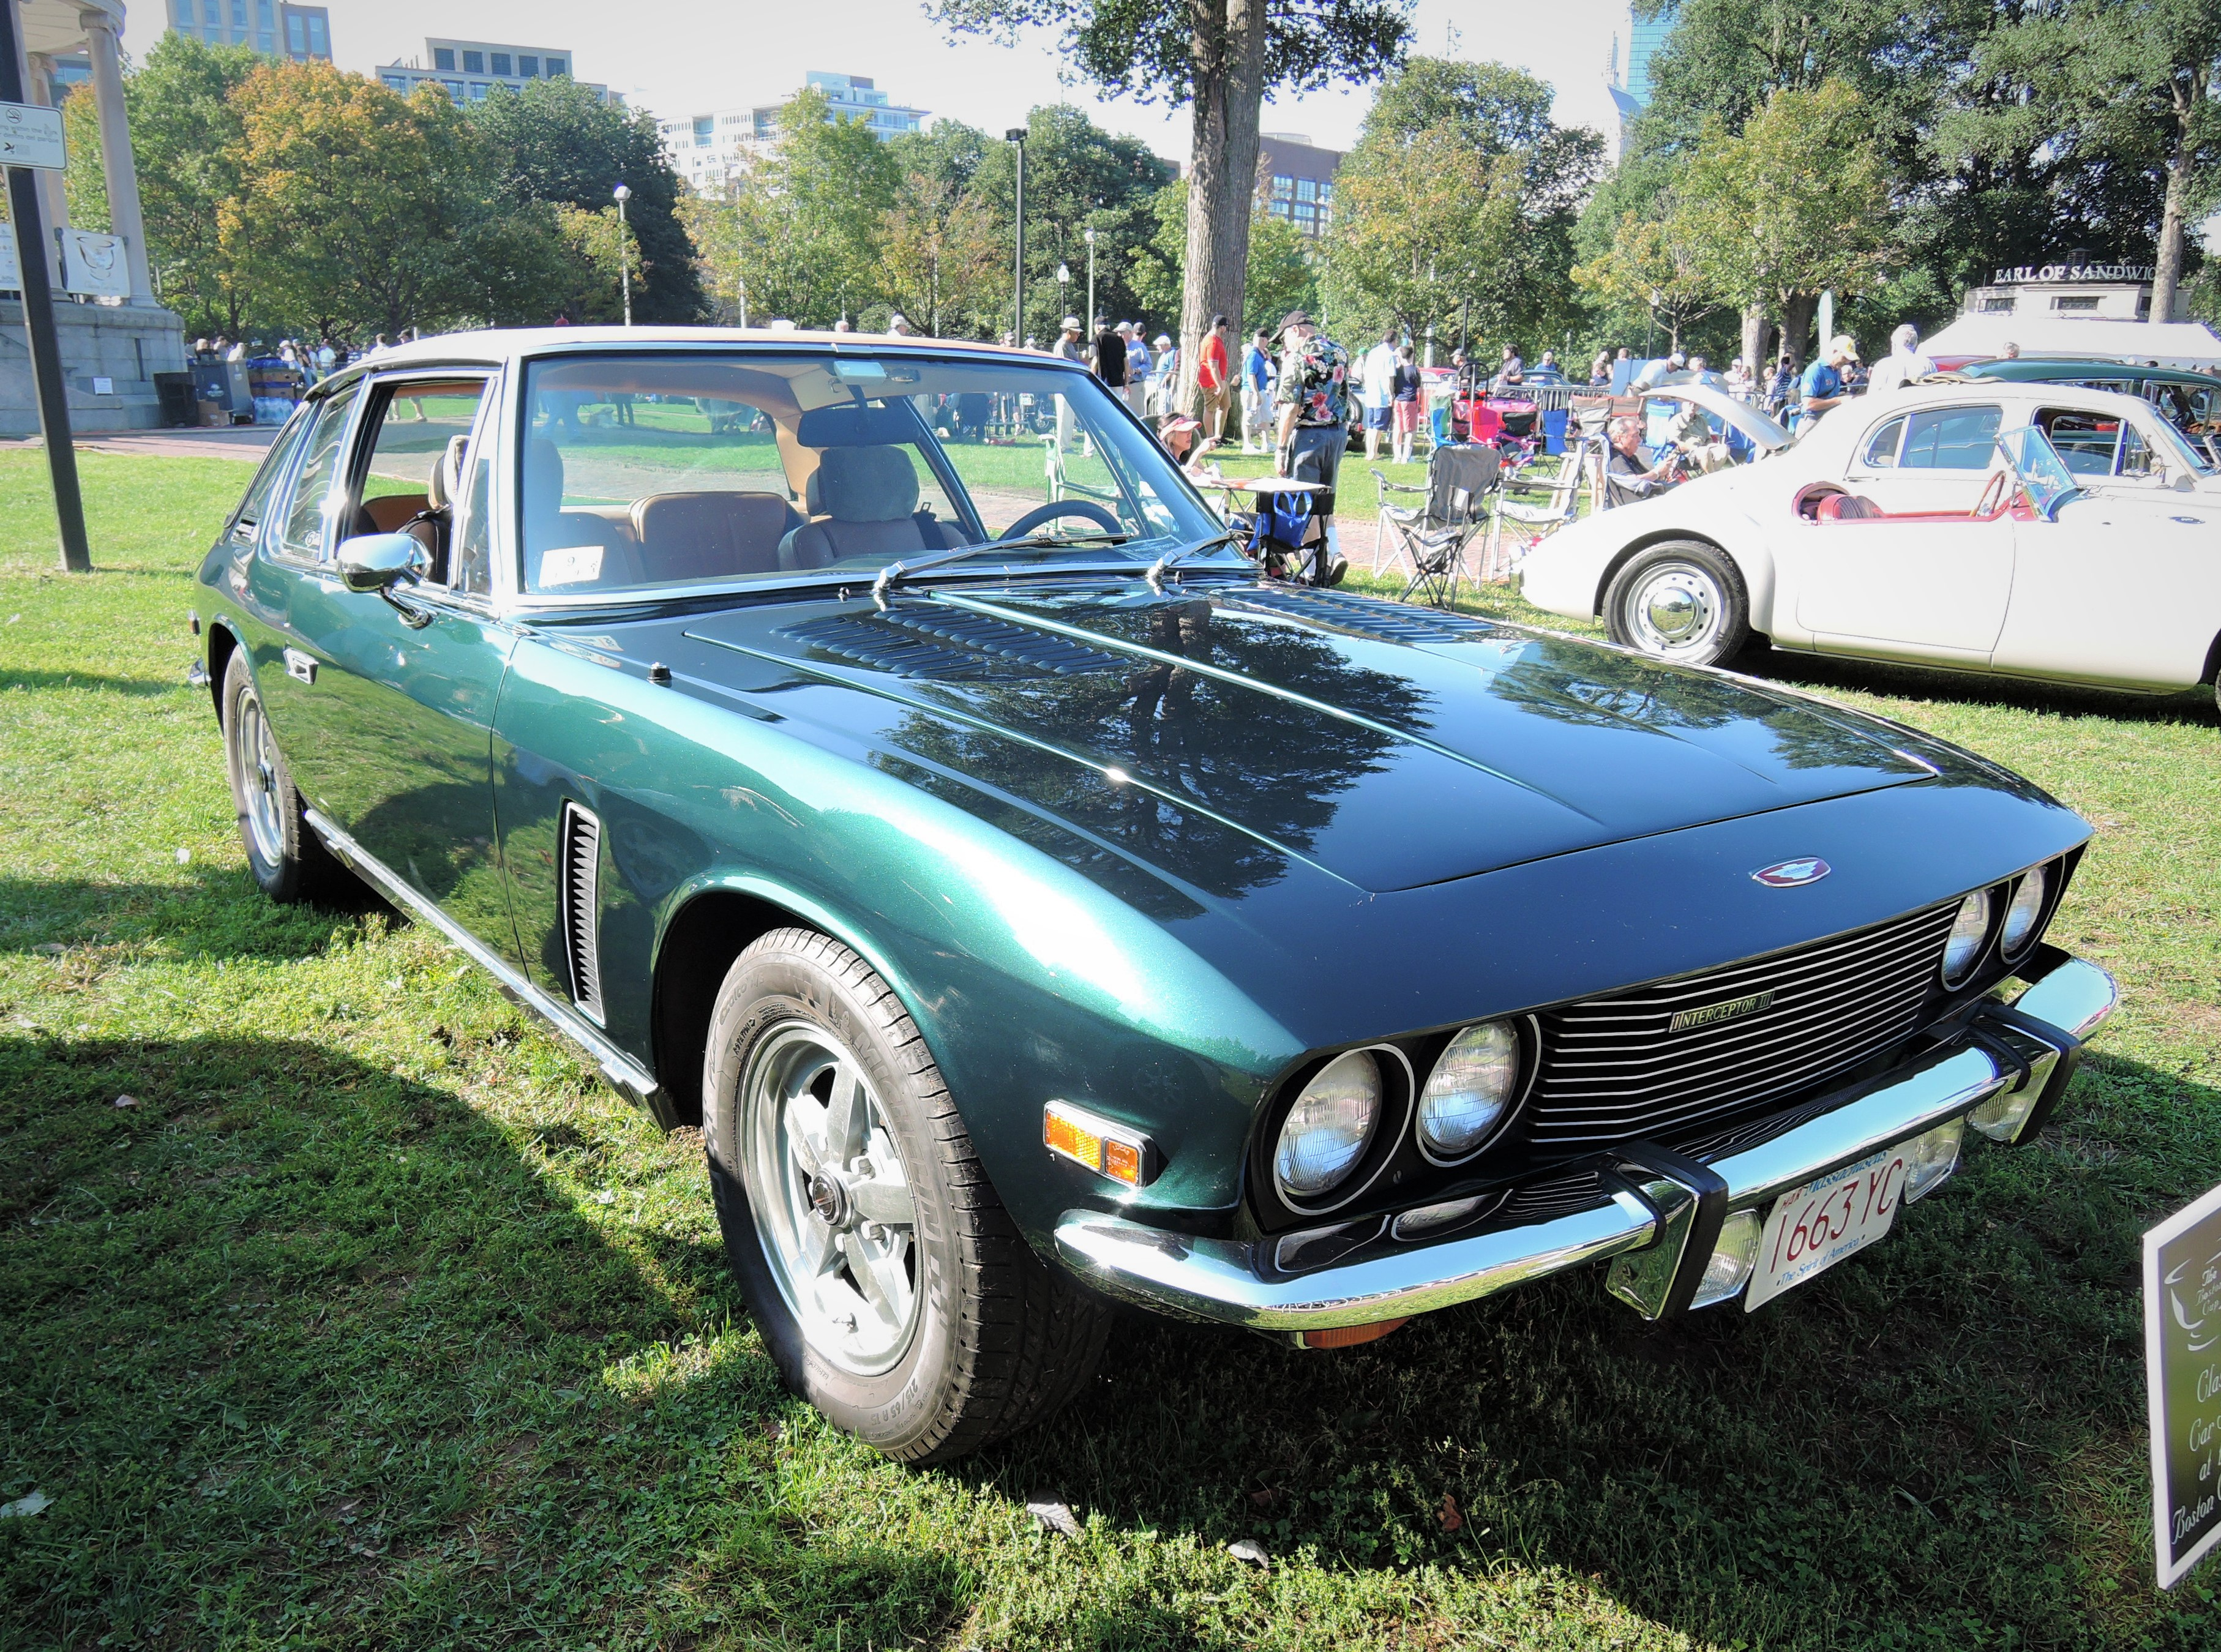 green 1974 Jensen Interceptor III - The Boston Cup 2017